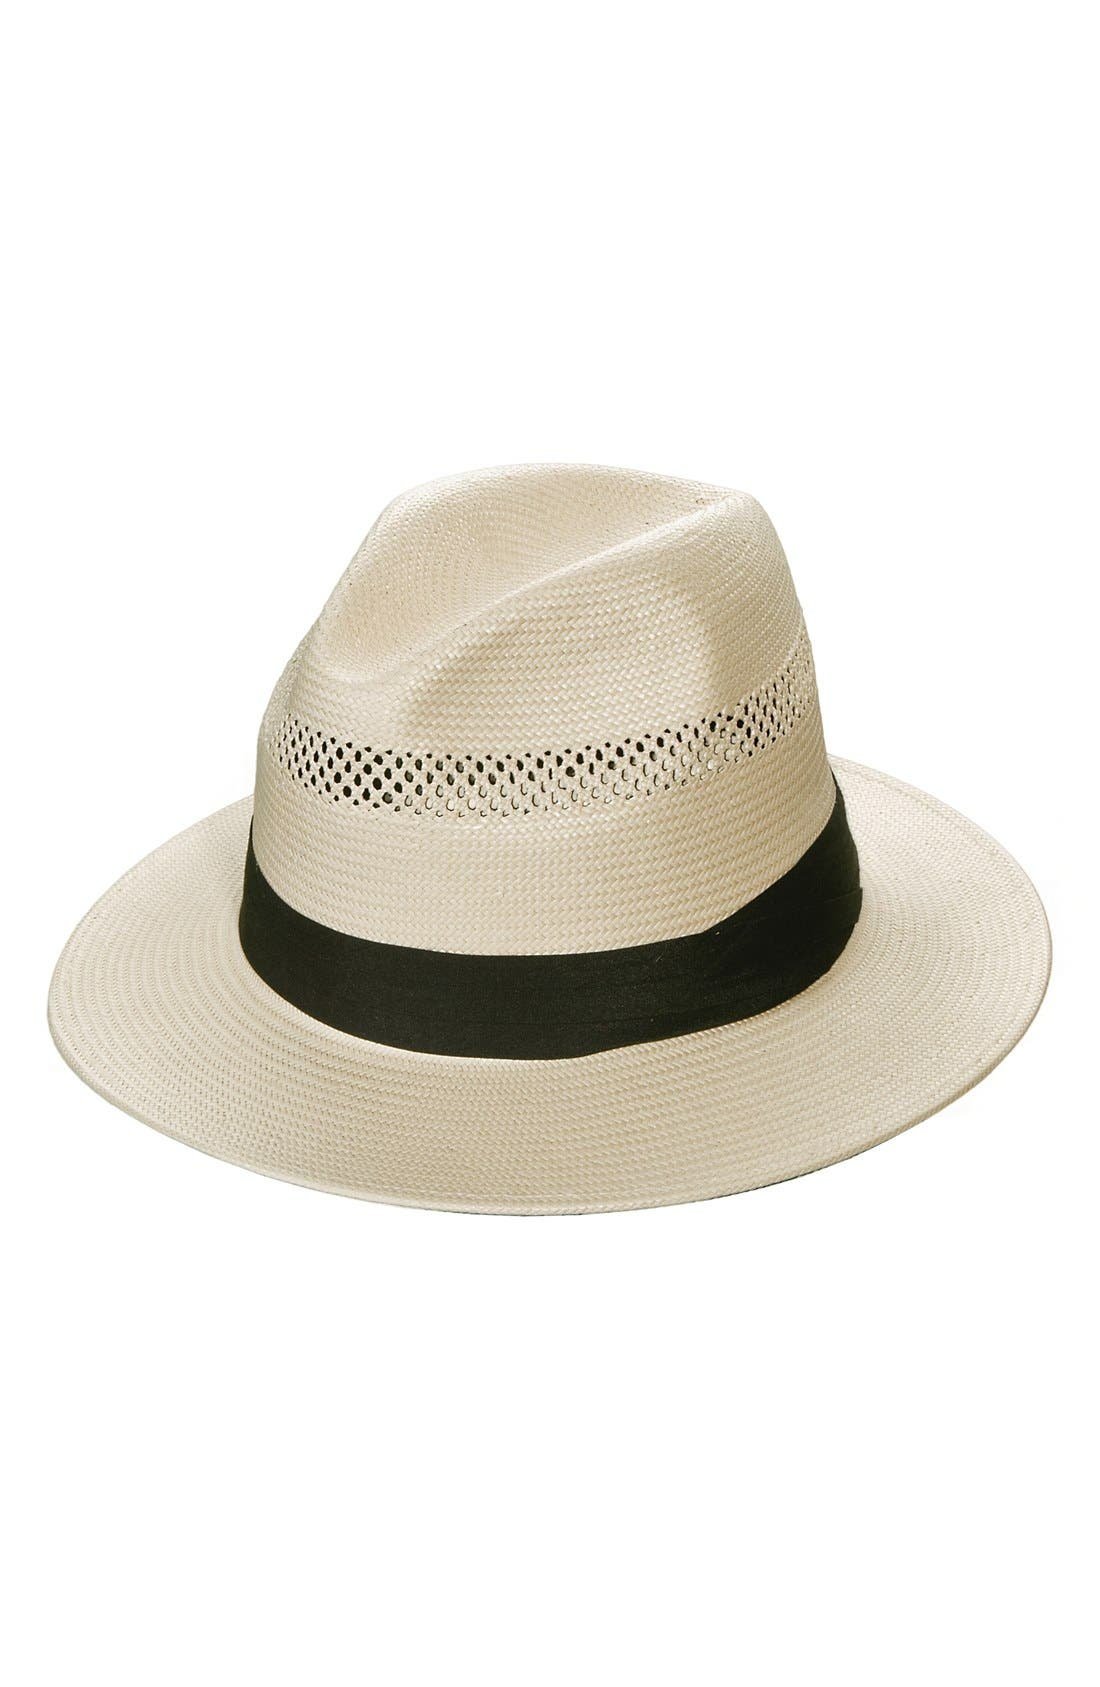 Straw Fedora,                         Main,                         color, 101